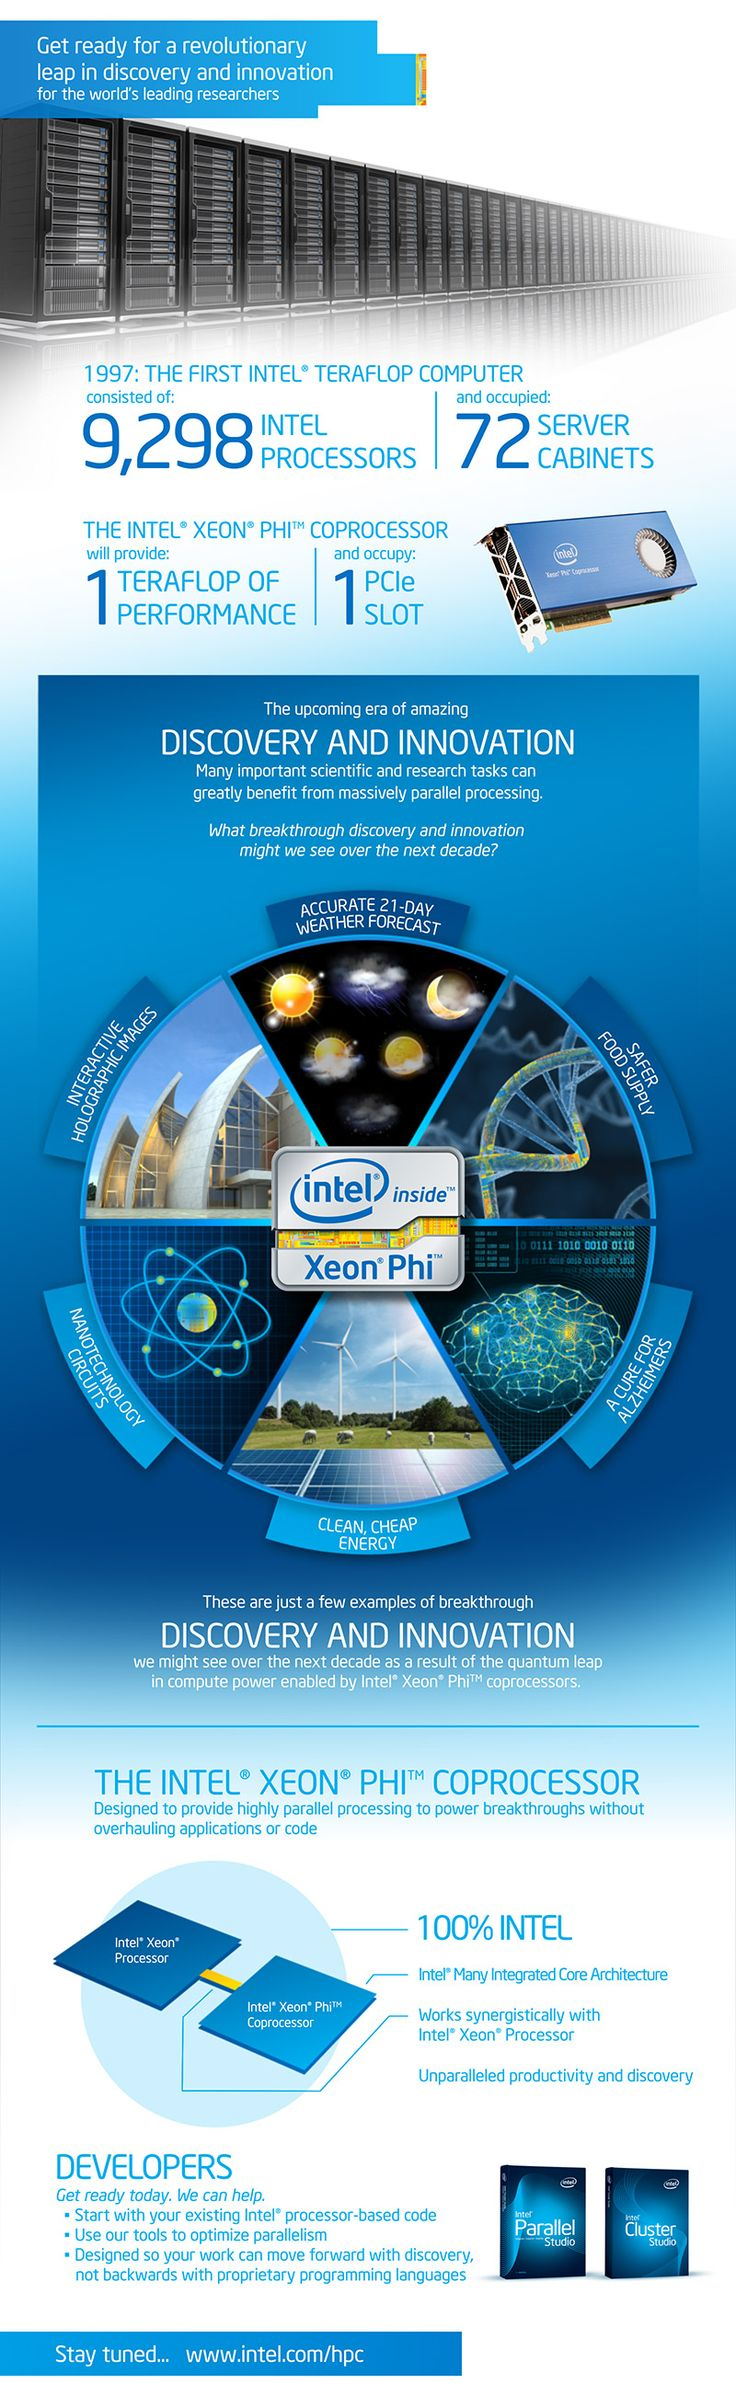 Intel Xeon Phi Coprocessor infographic  1TFlop Performance  1 PCIe Slot